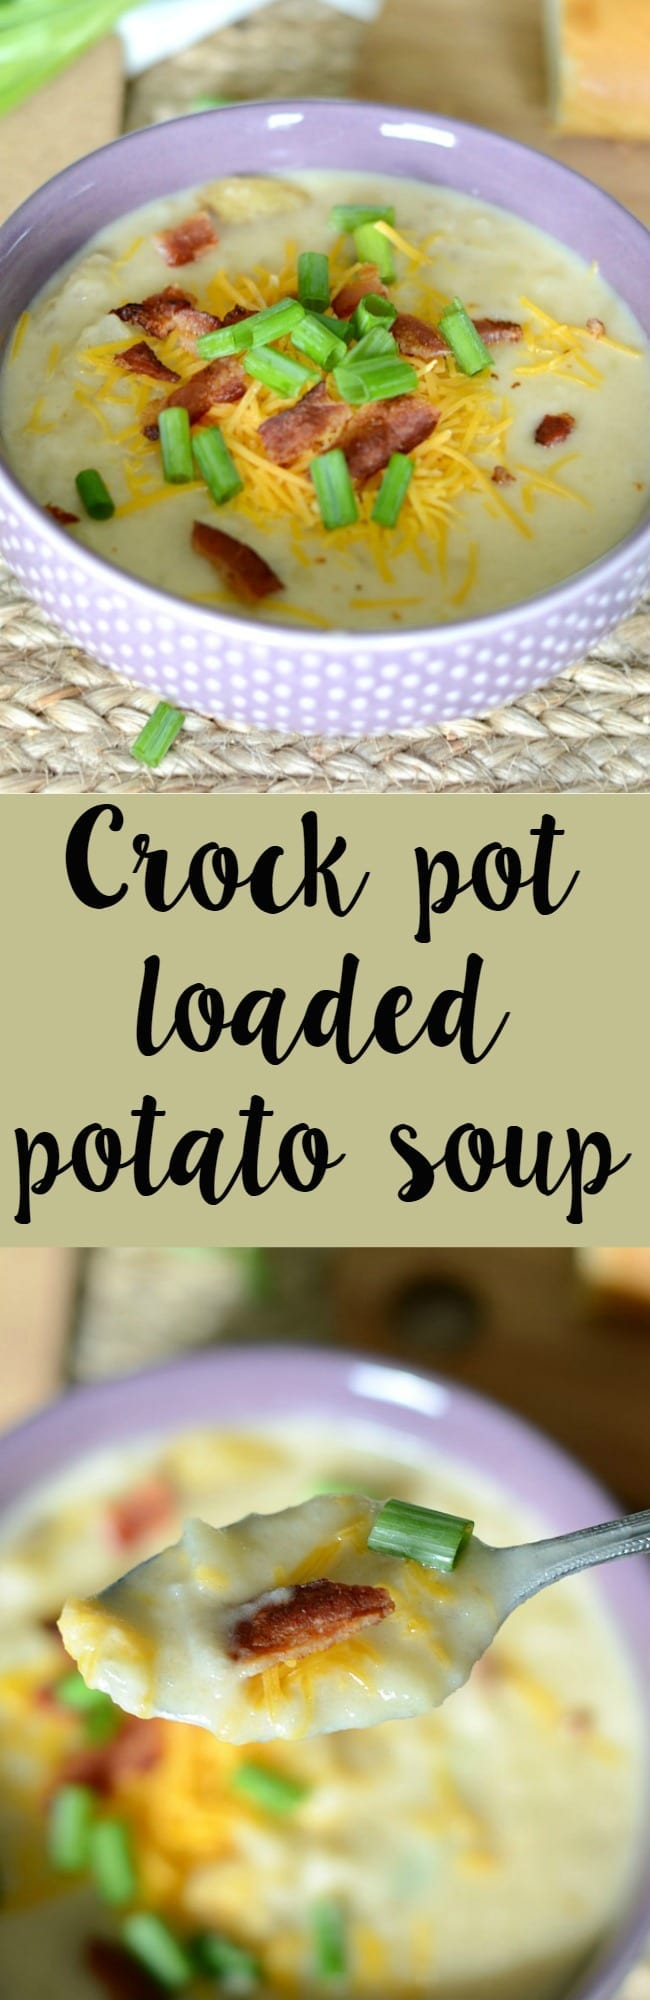 Crock pot loaded potato soup recipe